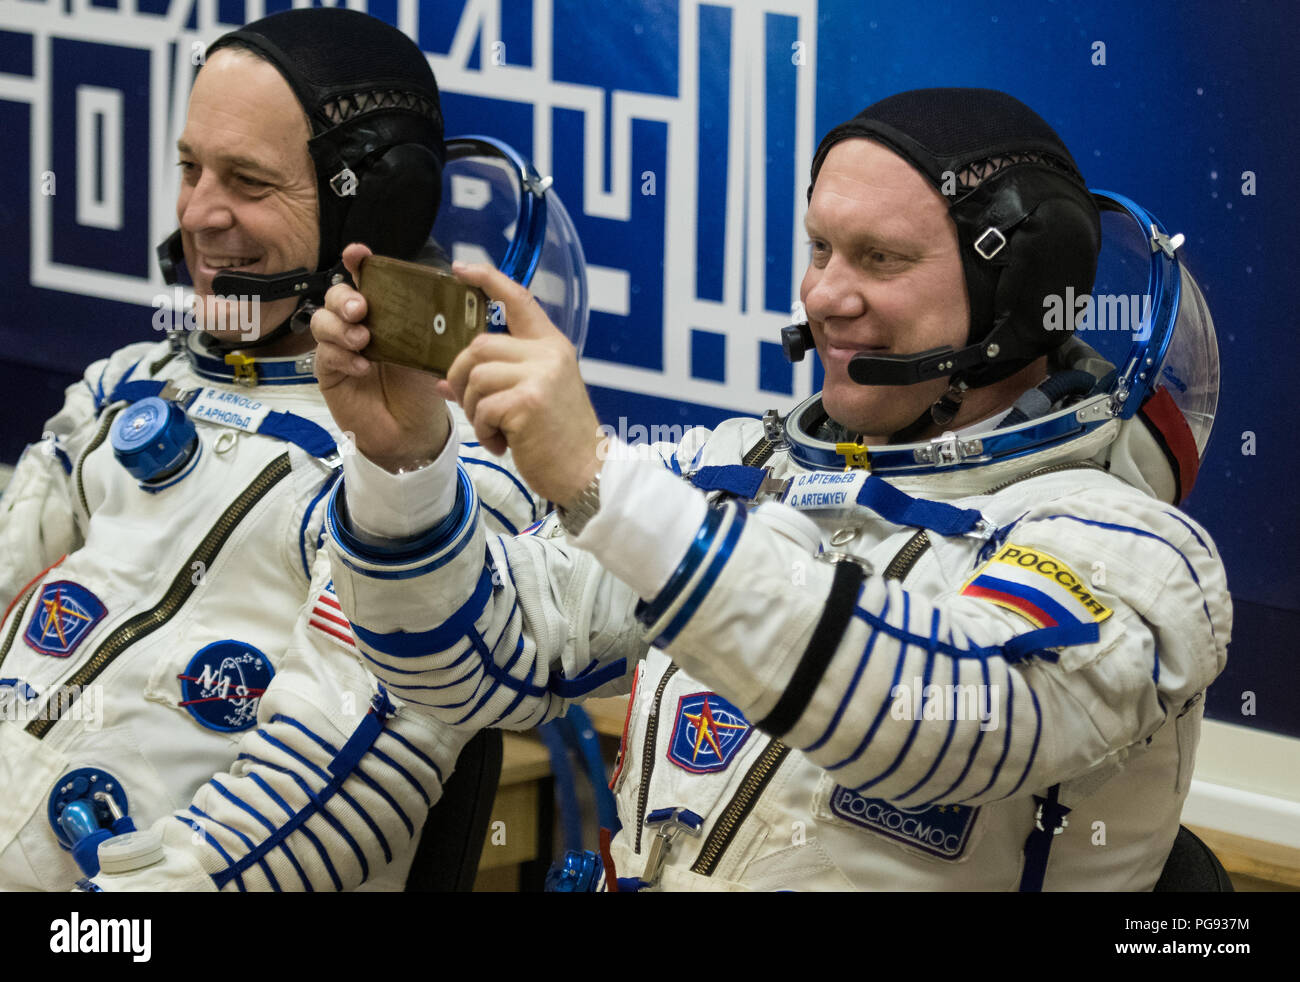 Expedition 55 Soyuz Commander Oleg Artemyev of Roscosmos takes a picture with a cell phone after having his Russian Sokol suit pressure checked in preparation for launch aboard the Soyuz MS-08 spacecraft, Wednesday, March 21, 2018 at the Baikonur Cosmodrome in Kazakhstan. Artemyev and flight engineers Ricky Arnold and Drew Feustel of NASA launched aboard the Soyuz MS-08 spacecraft at 1:44 p.m. Eastern time (11:44 p.m. Baikonur time) on March 21 to begin their journey to the International Space Station. - Stock Image